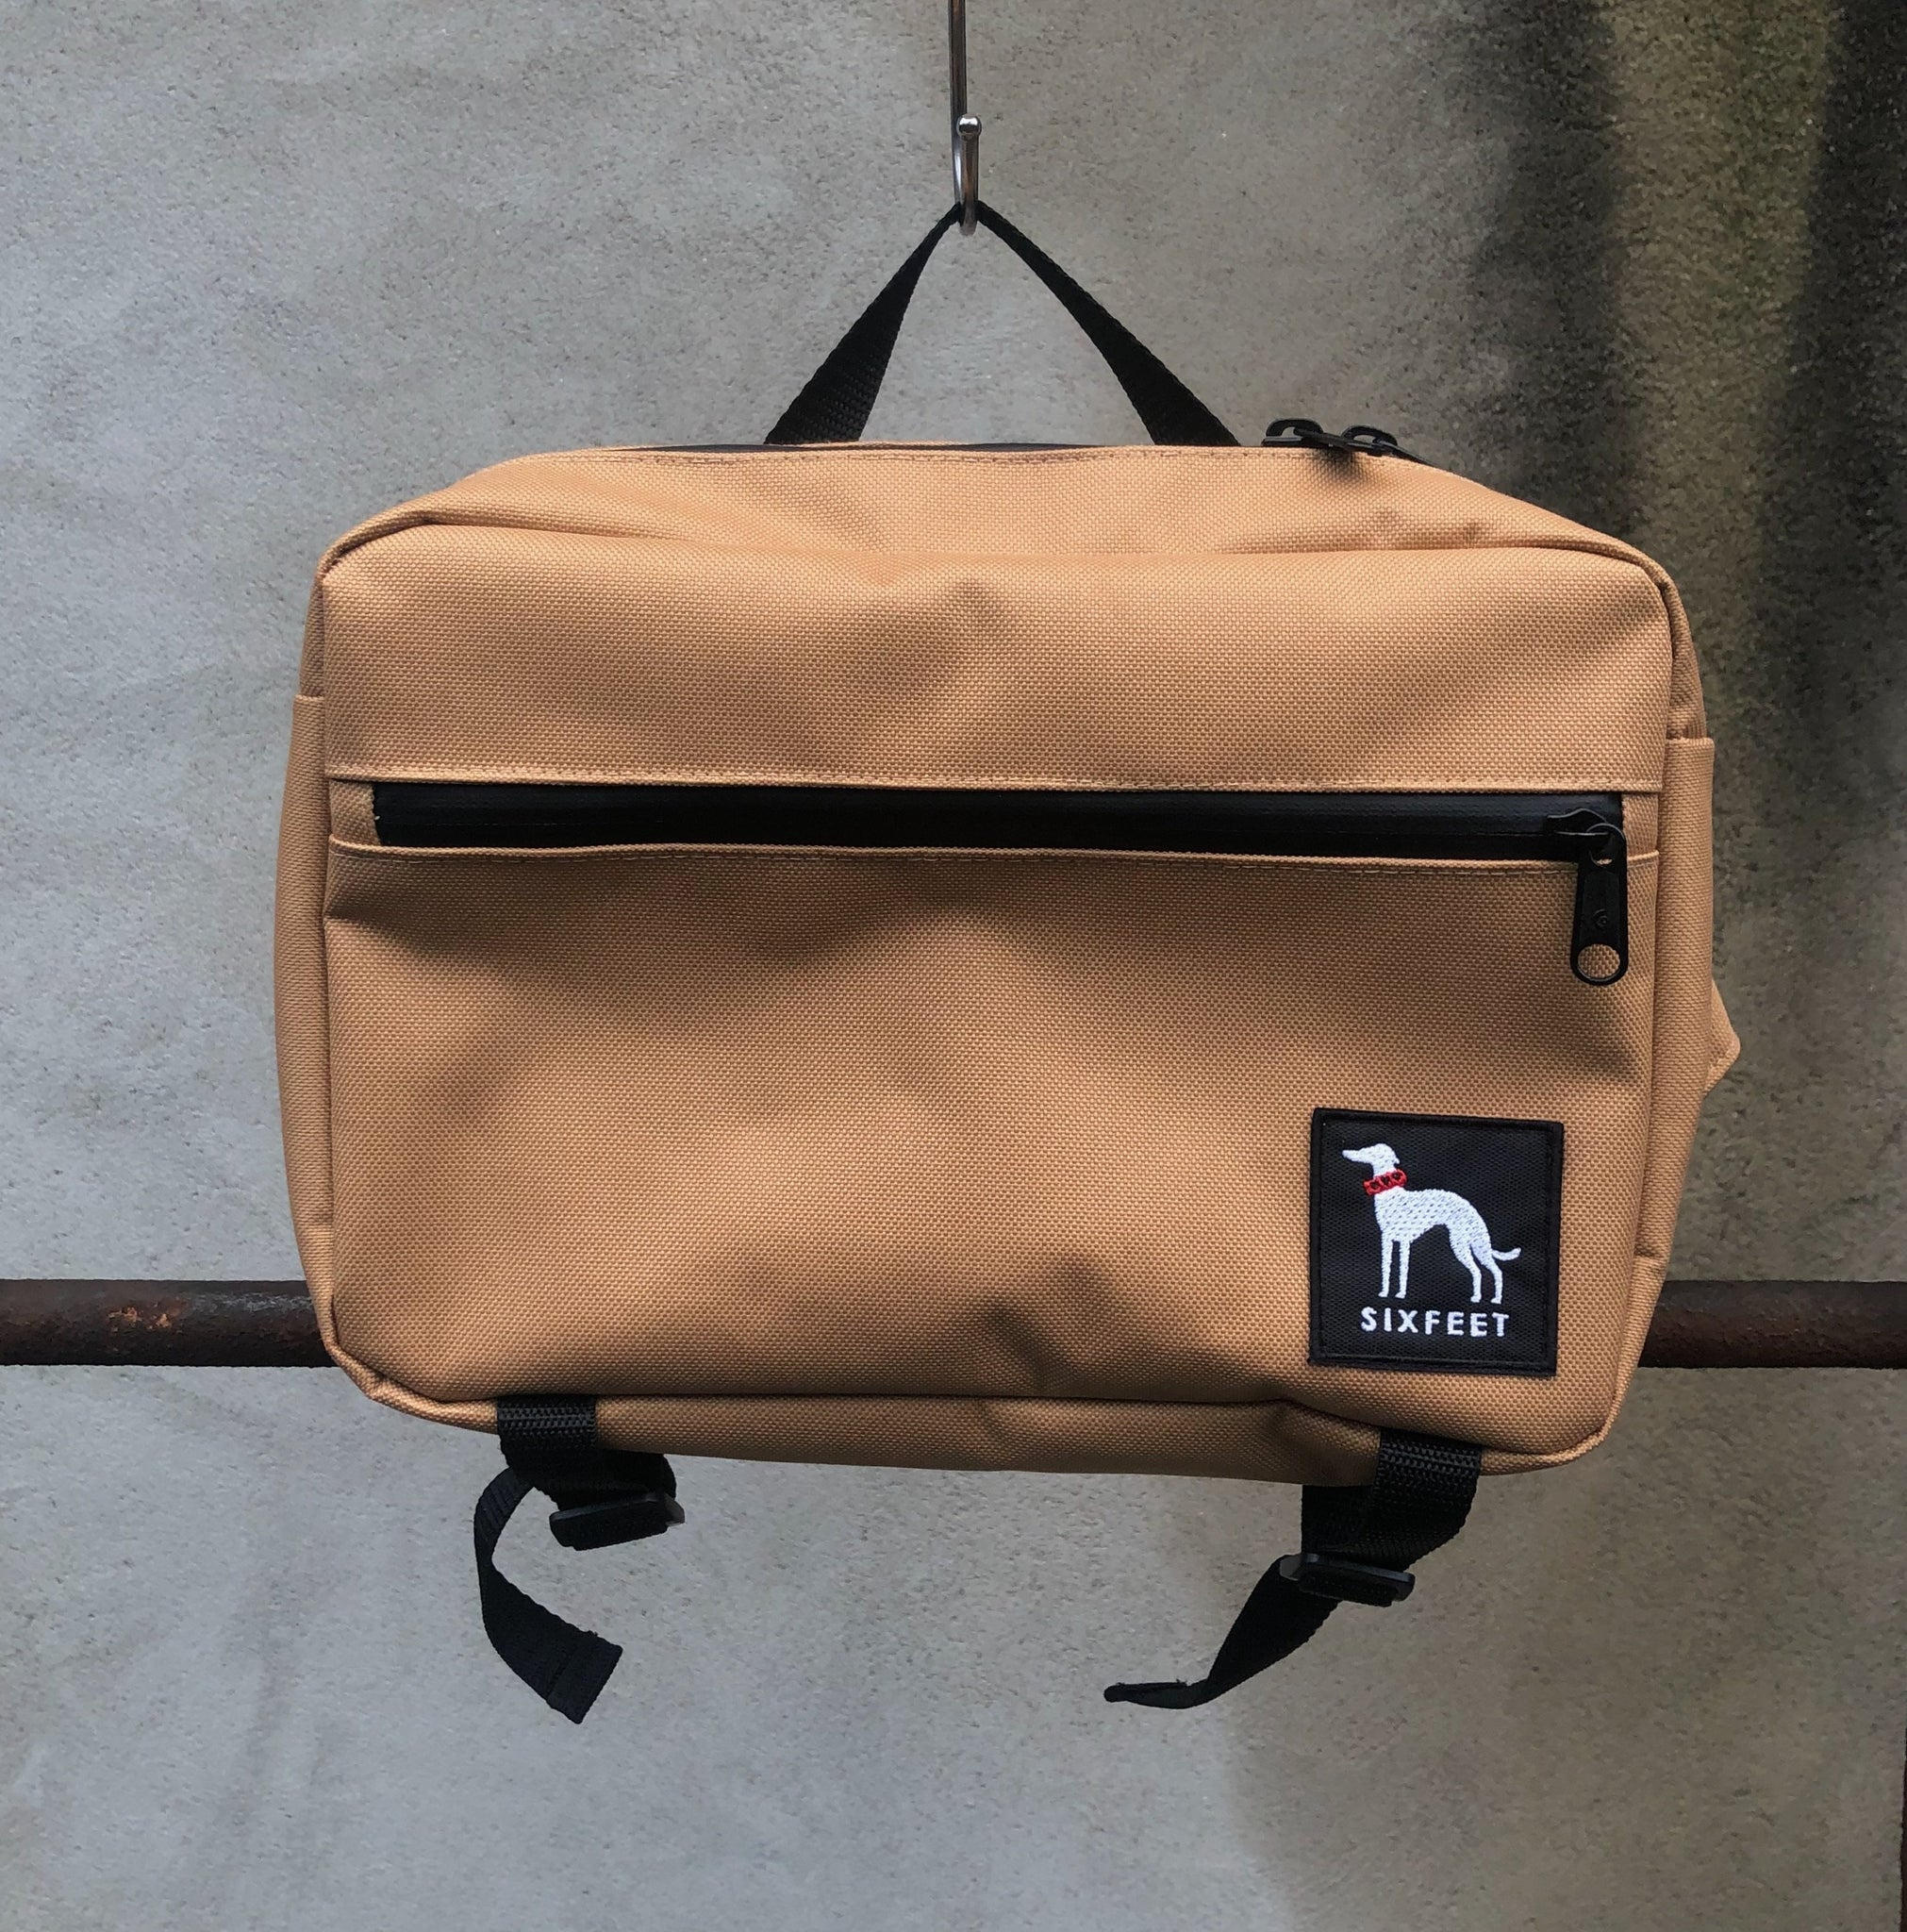 Waterproof walkbag - beige - sixfeetdogwear